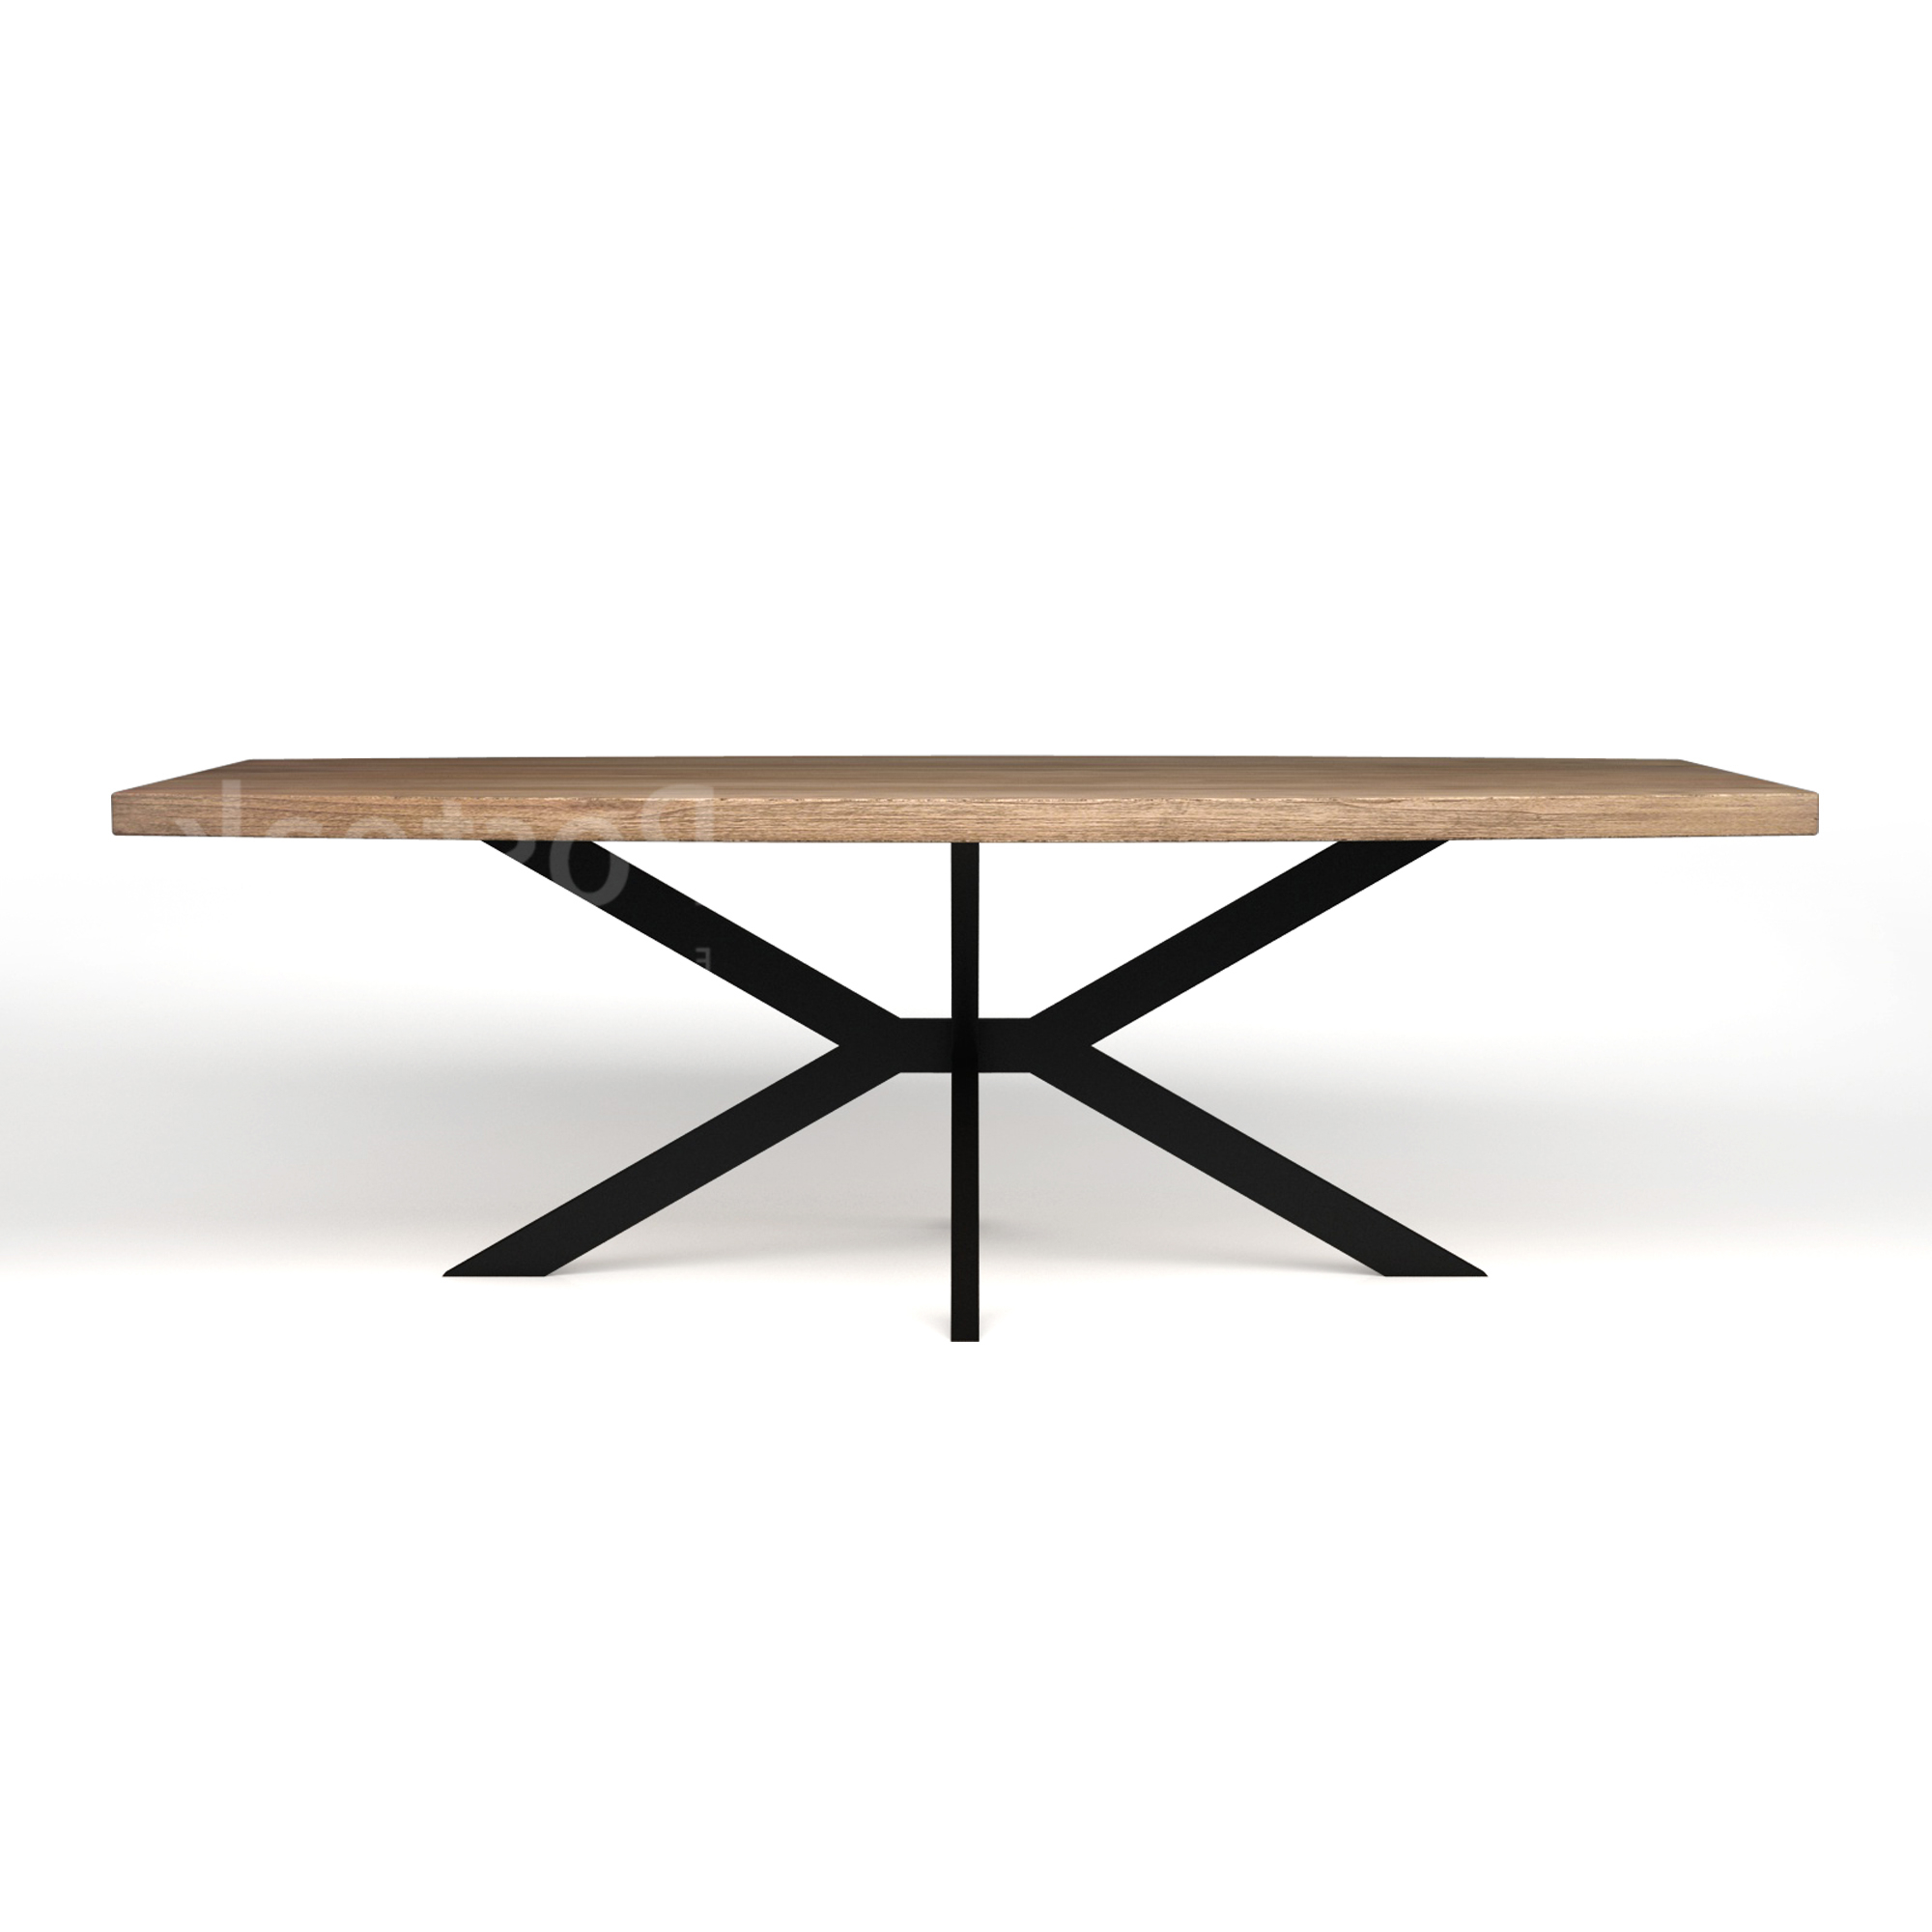 Newest Modern Dining Table – Iron Cross Legs (Gallery 21 of 30)